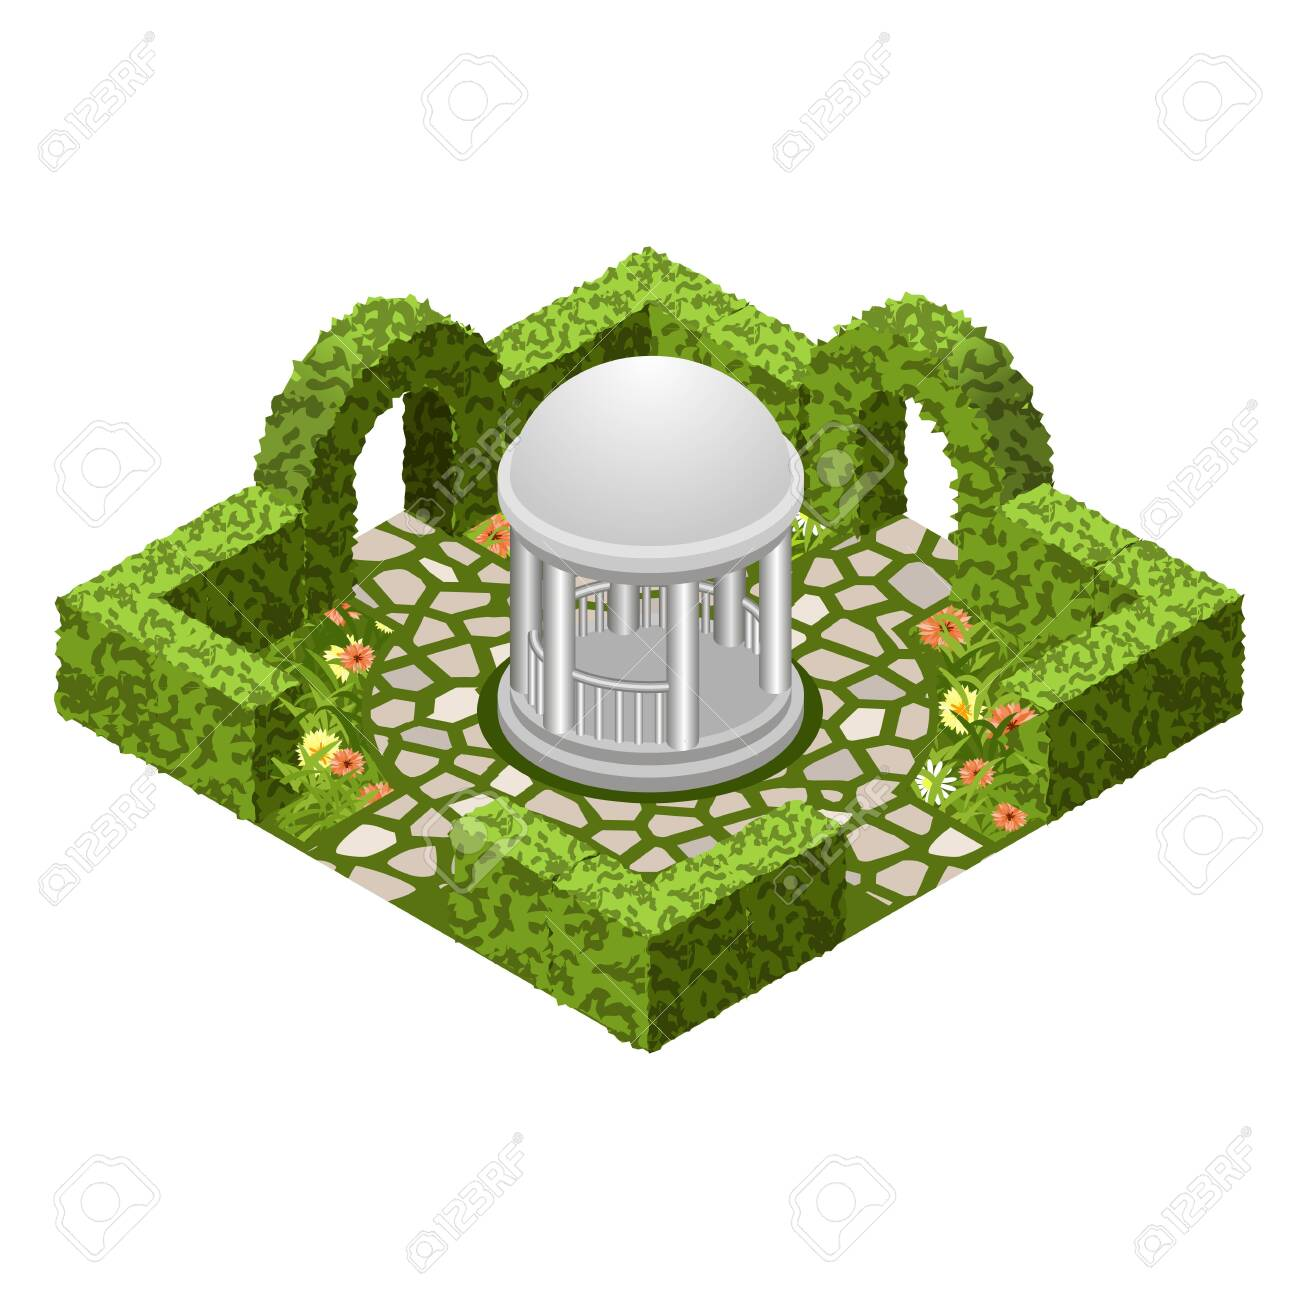 Isometric Garden Landscape Scene Topiary Garden Bushes Flowers Royalty Free Cliparts Vectors And Stock Illustration Image 127107355